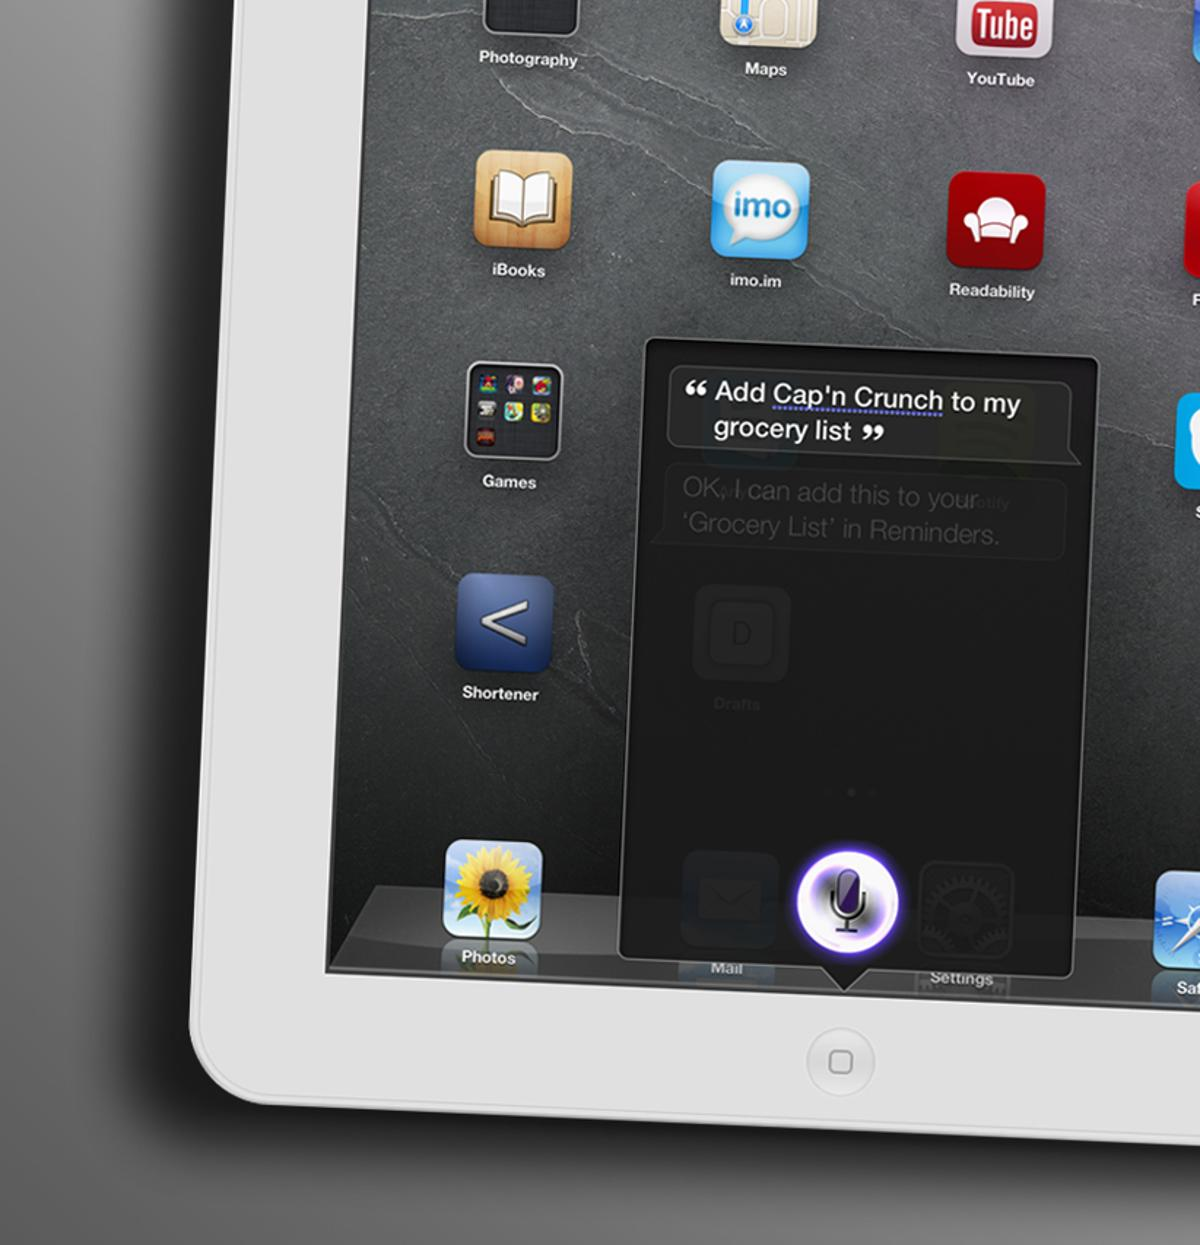 An easily-unnoticed change in iOS 6 lets you create shared grocery lists with Siri